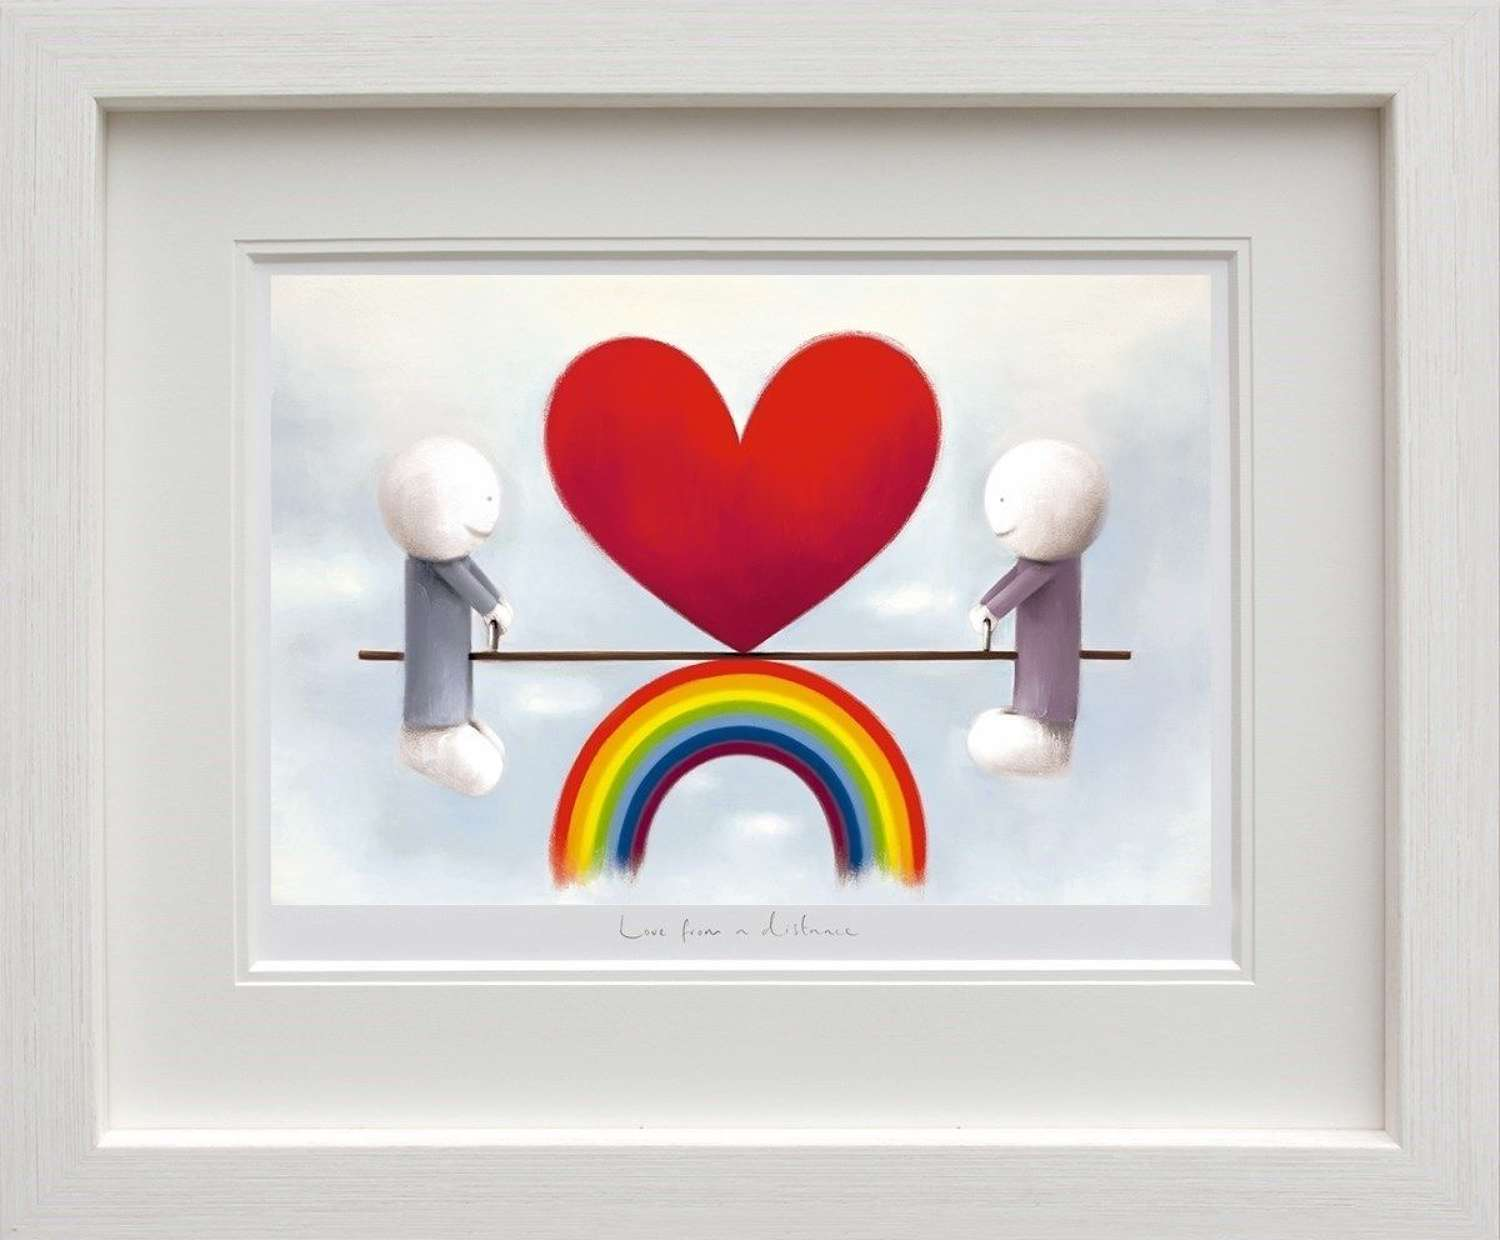 Love From A Distance - Framed Art Print by Doug Hyde